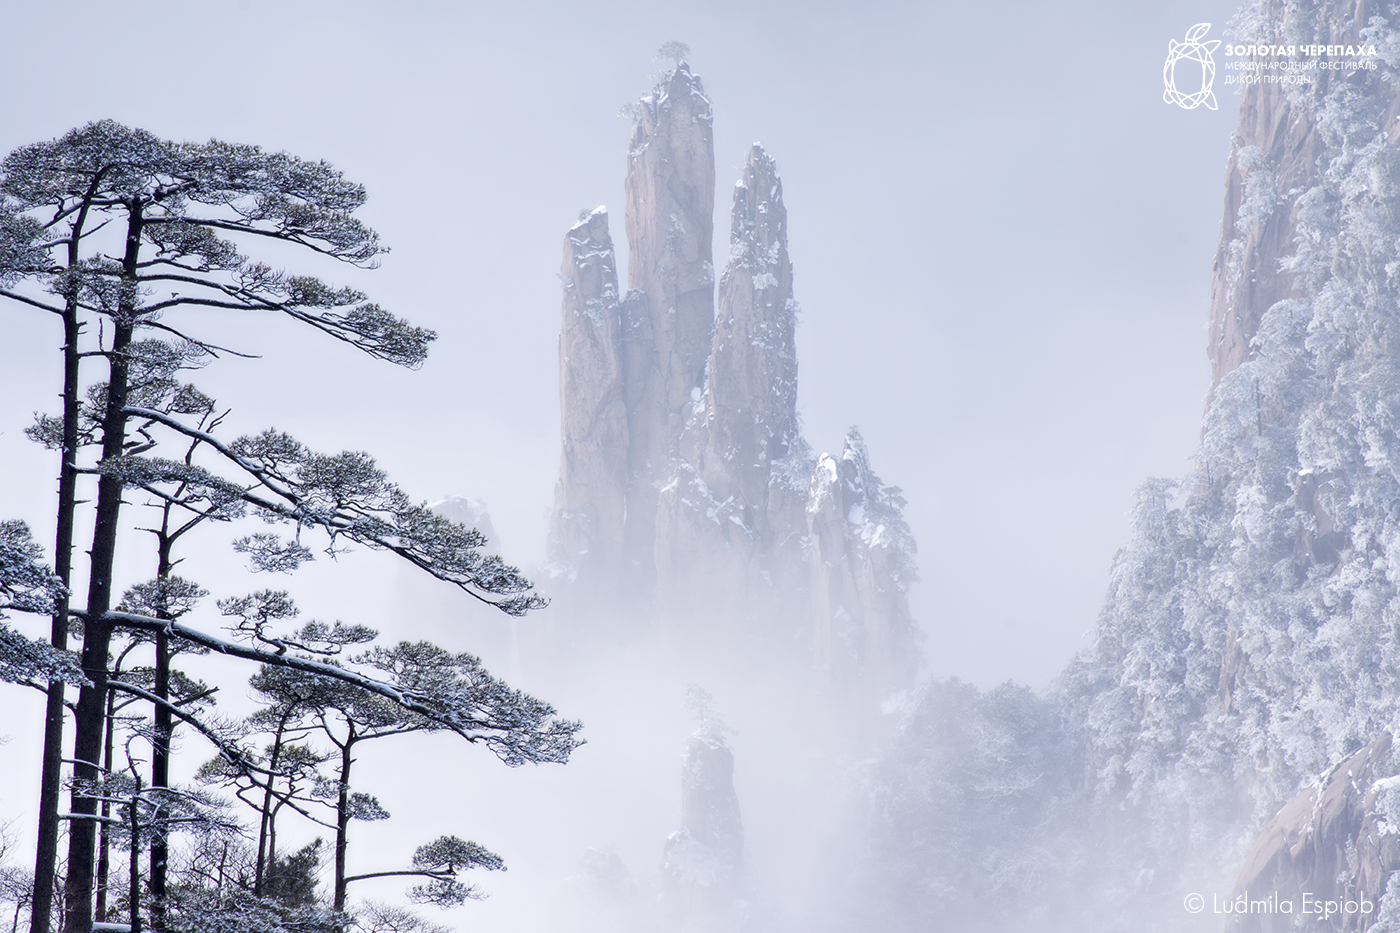 8 Ludmila Espiob Floating mountains China Huangshan